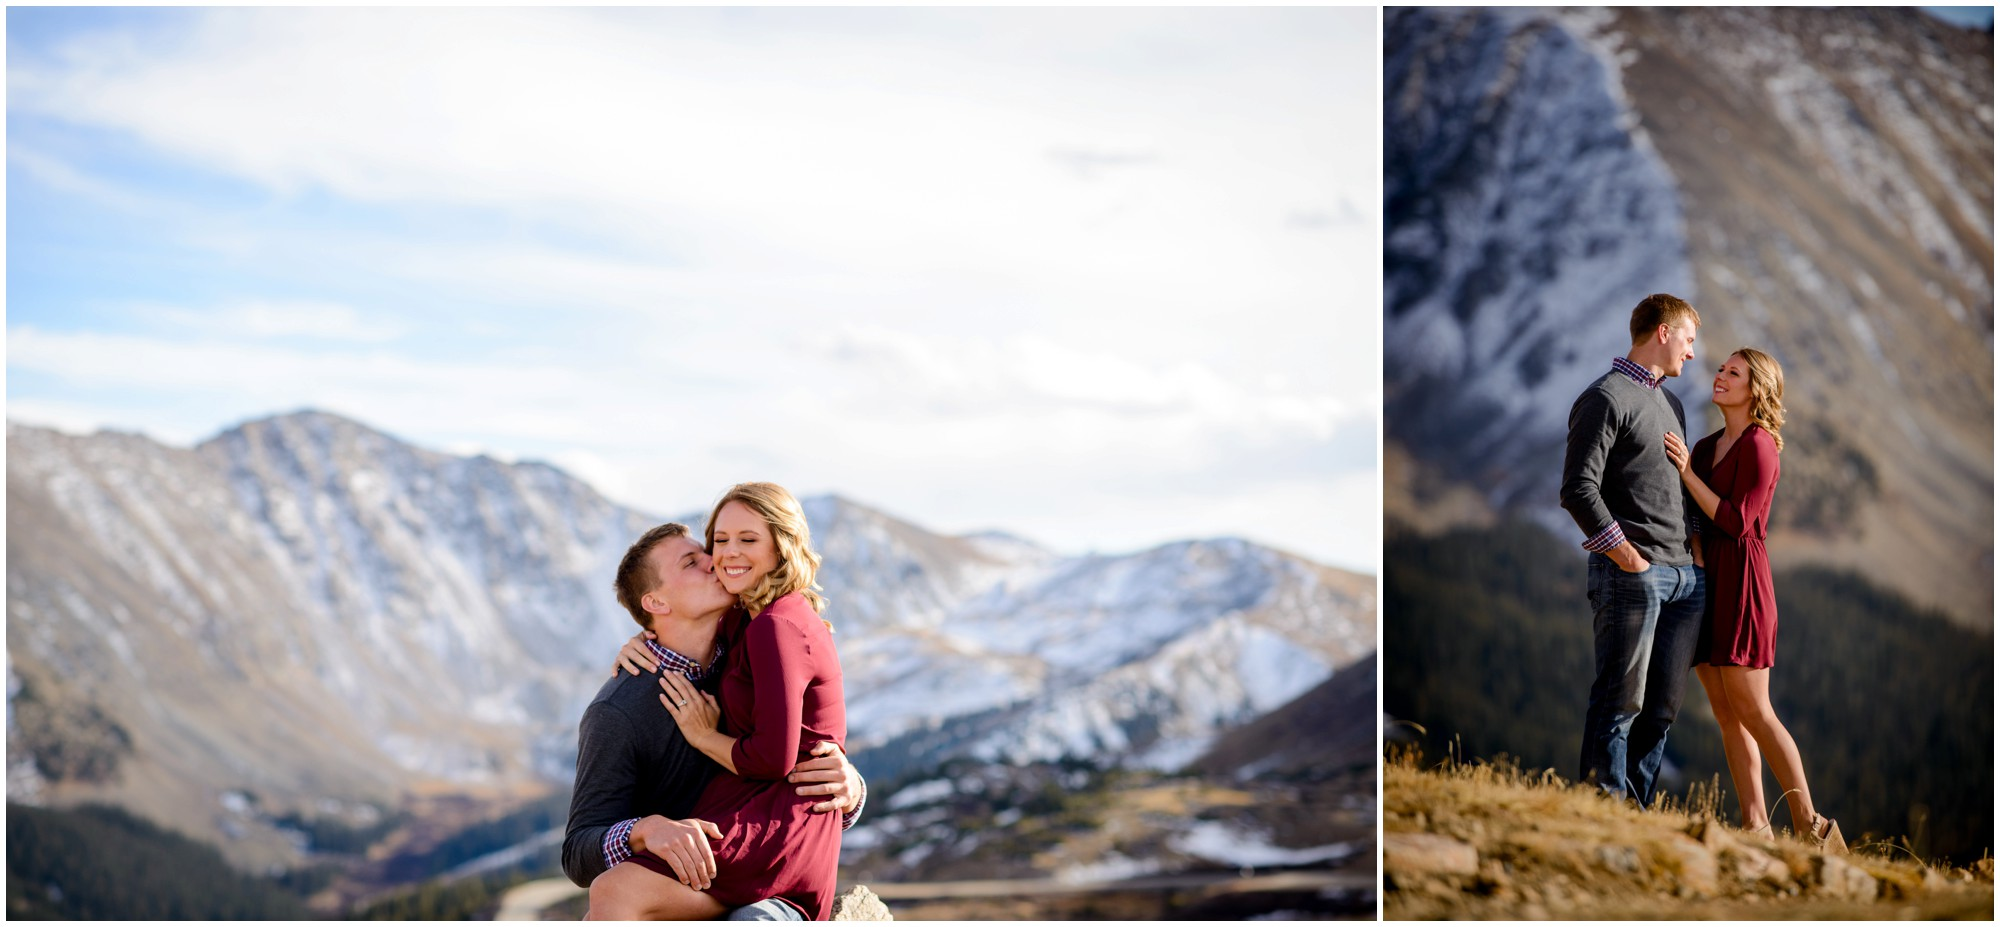 30-Loveland-pass-sunset-engagement-photography.jpg